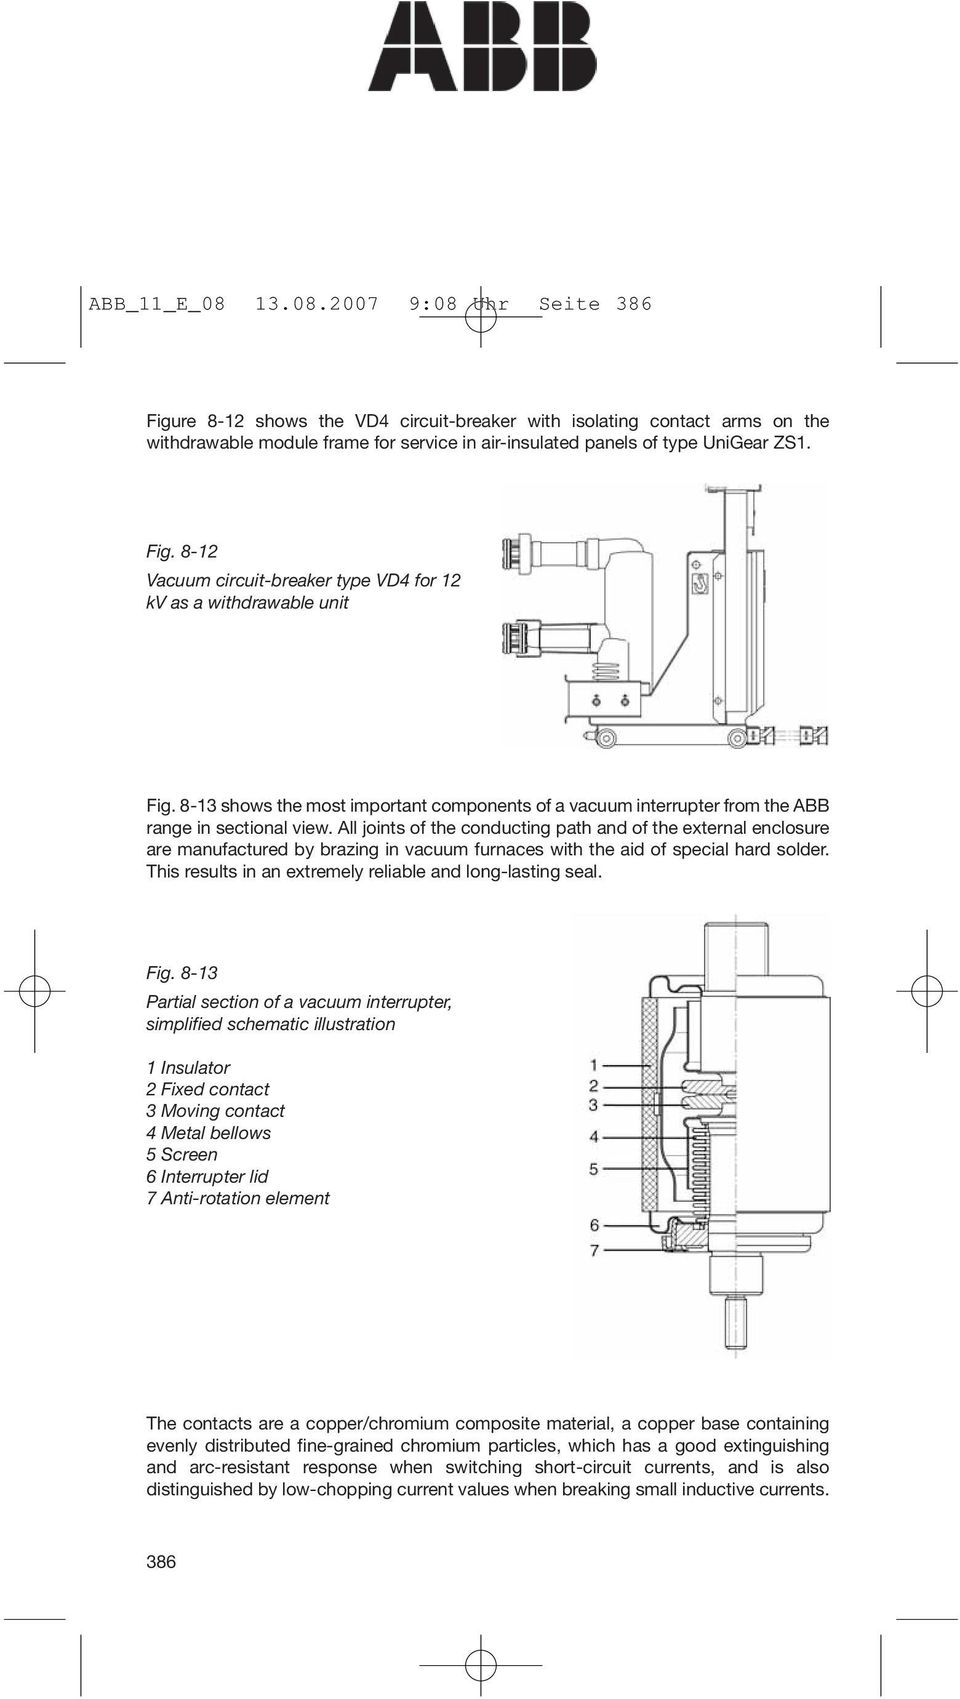 8 Switchgear And Installations For High Voltage Up To Abb Air Circuit Breaker Wiring Diagram All Joints Of The Conducting Path External Enclosure Are Manufactured By Brazing In